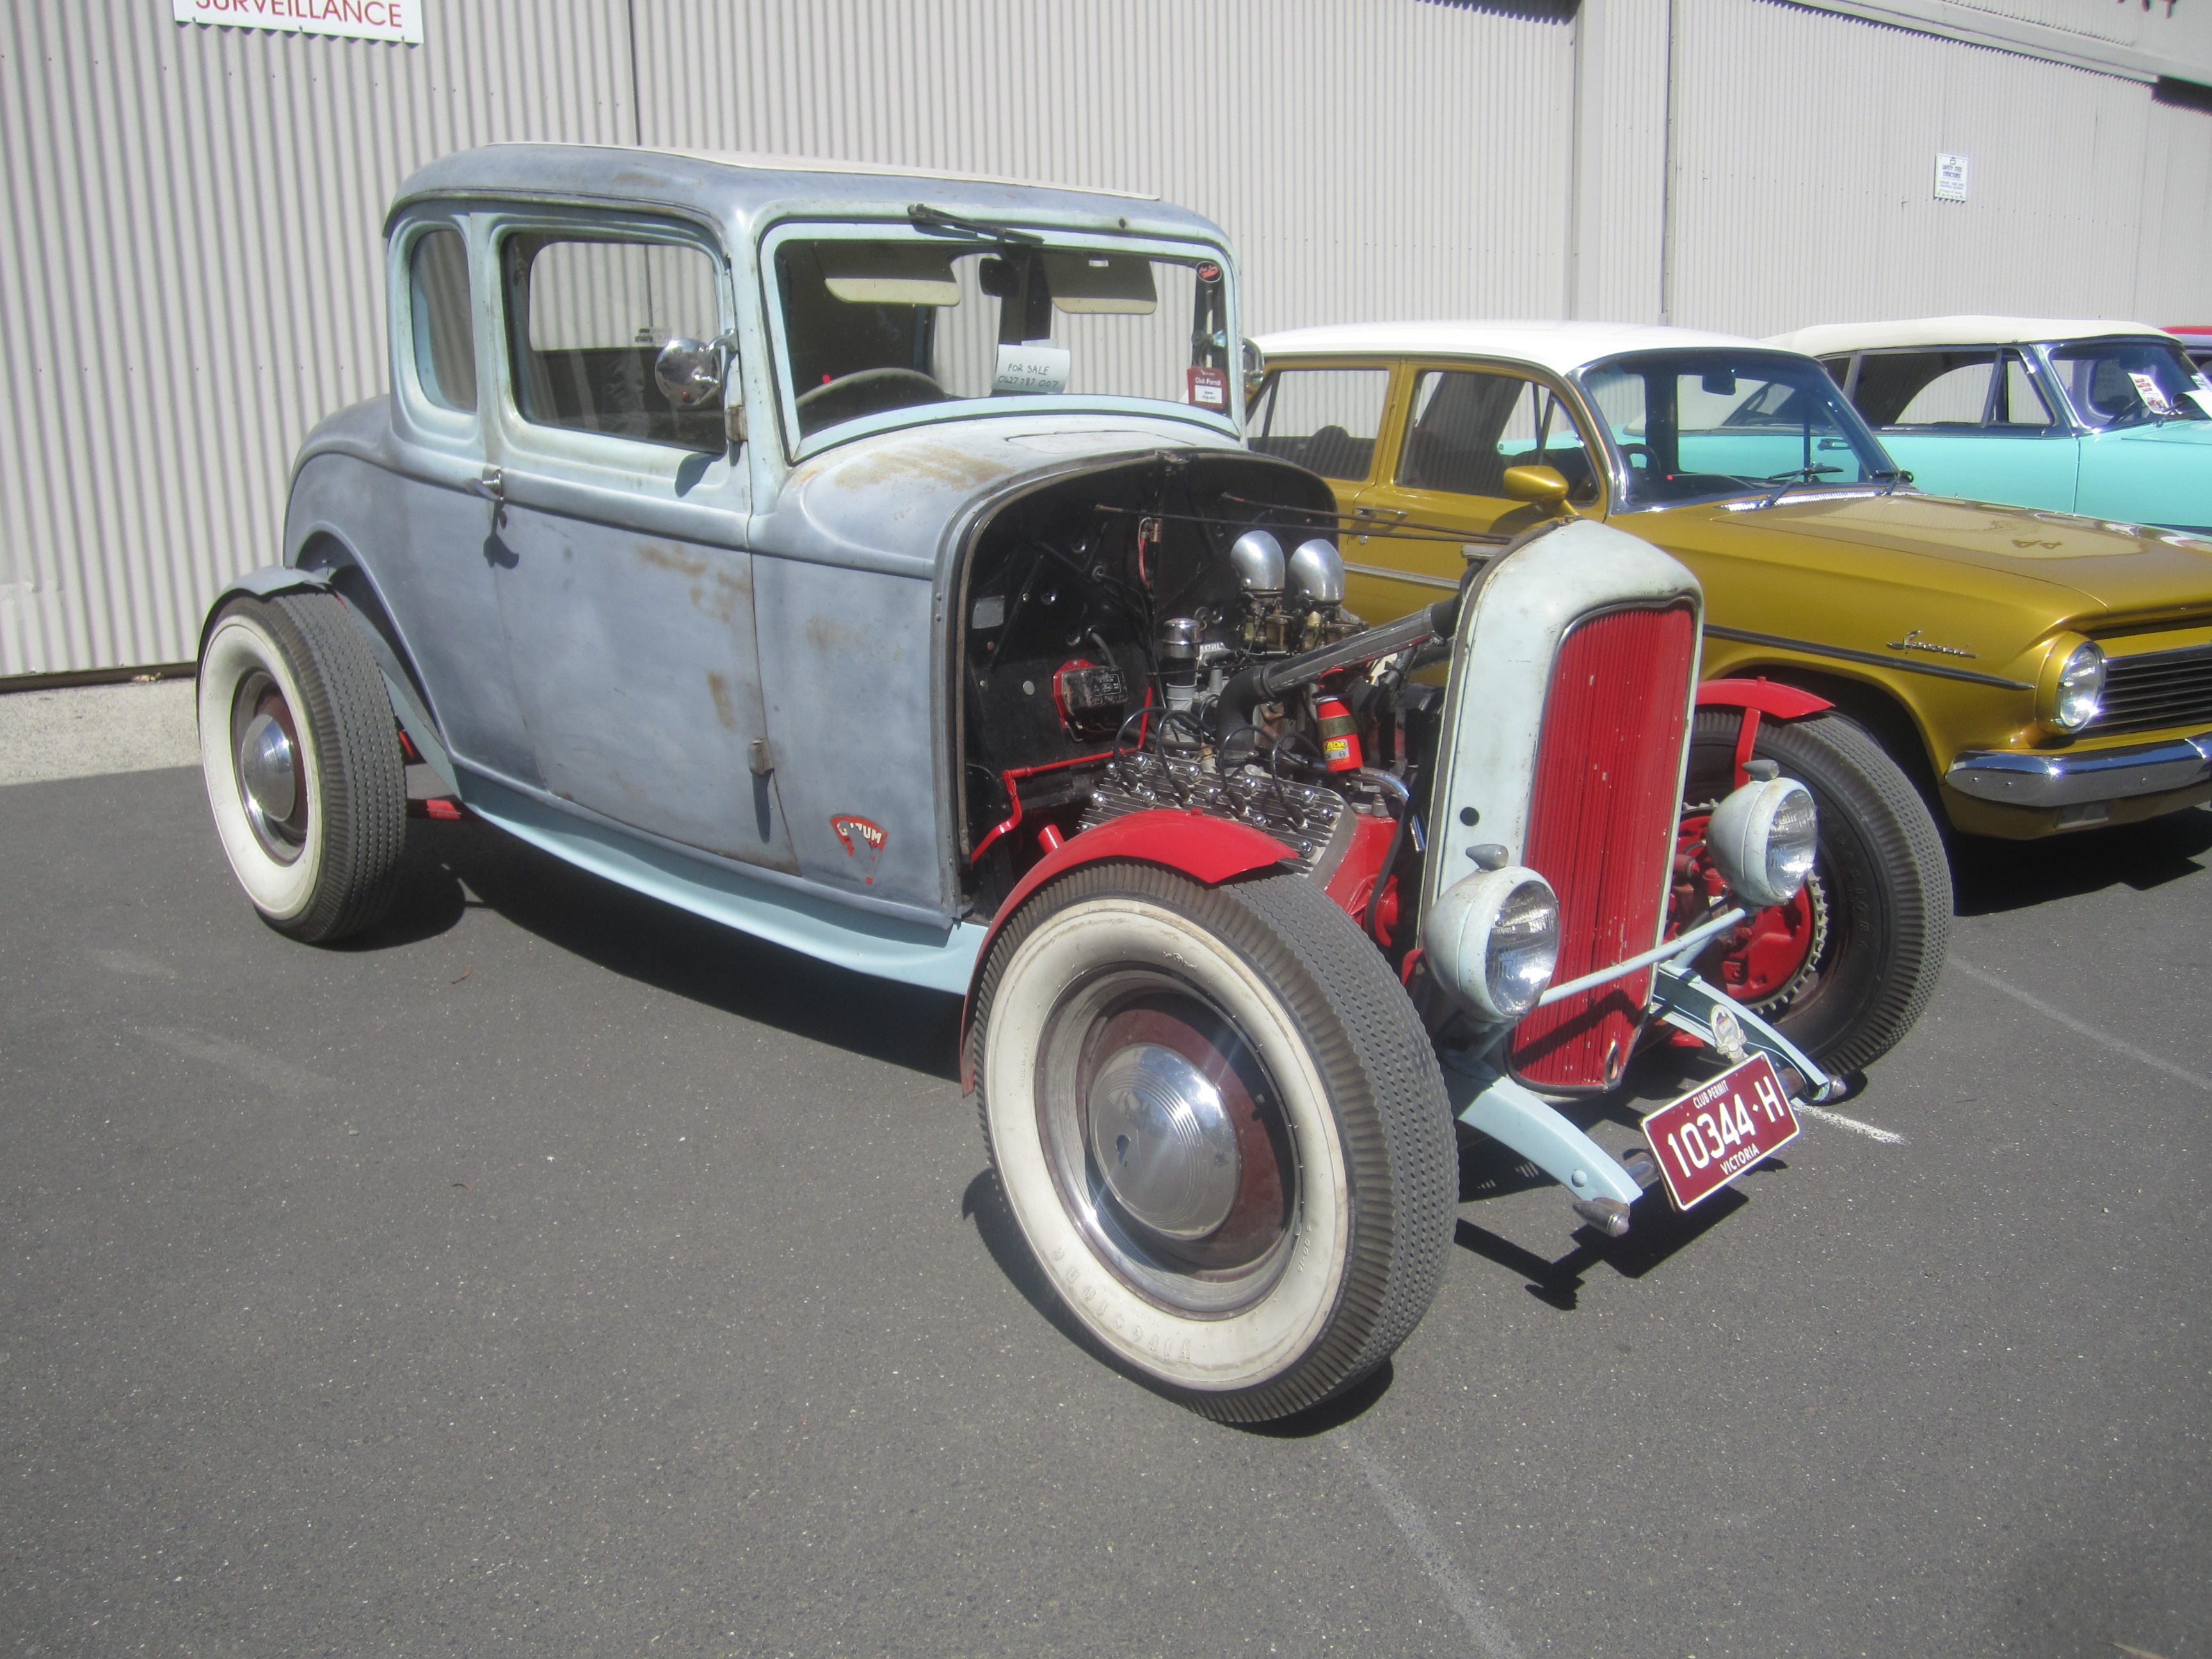 File:1932 Ford 5 window Coupe Hot Rod 2.jpg - Wikimedia Commons